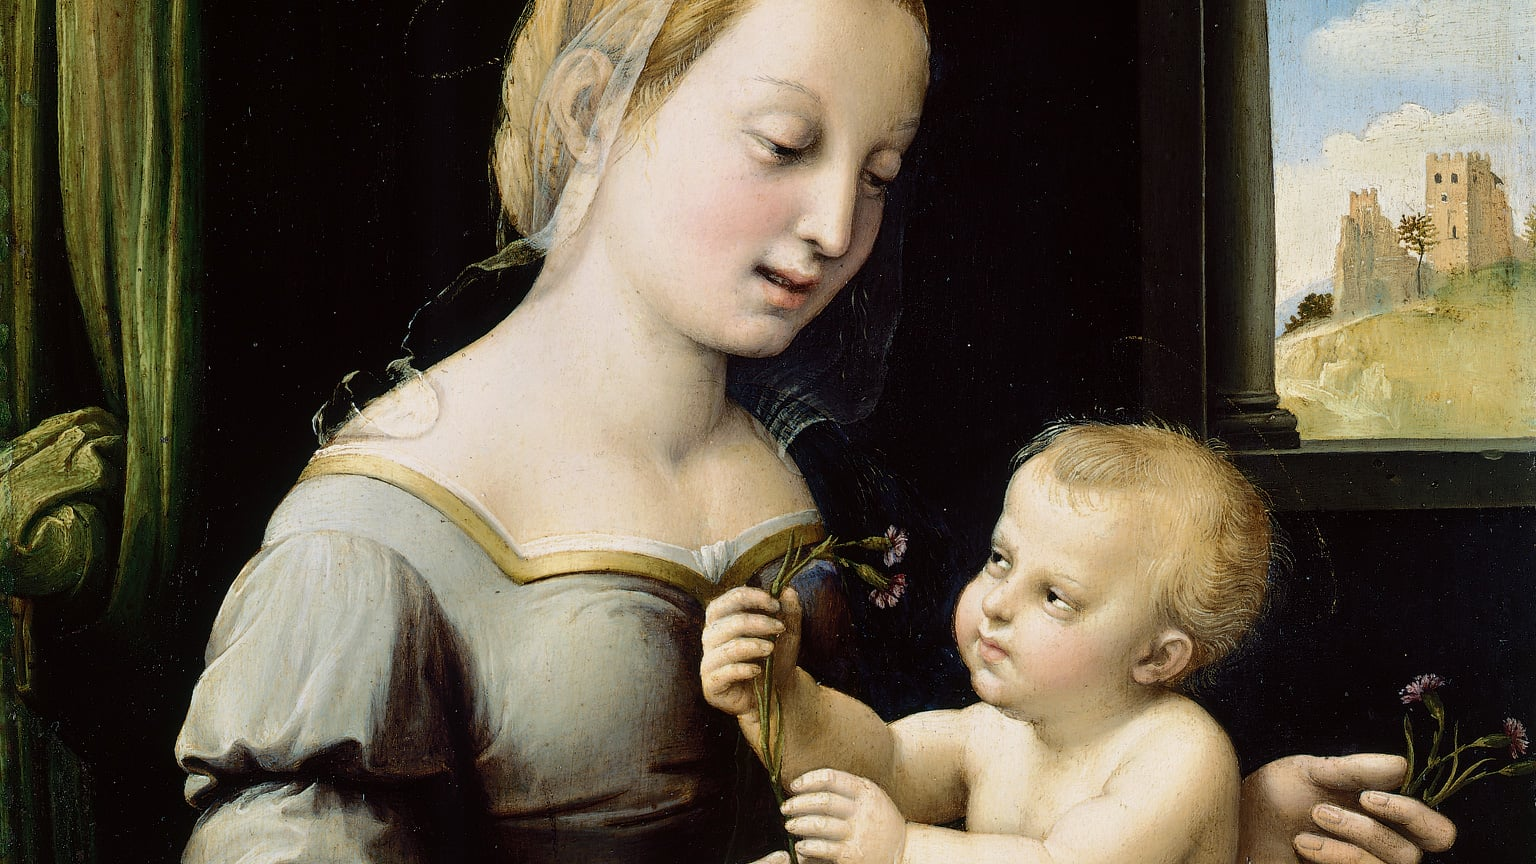 The National Gallery buys Raphael's Madonna of the Pinks with help from the Art Fund